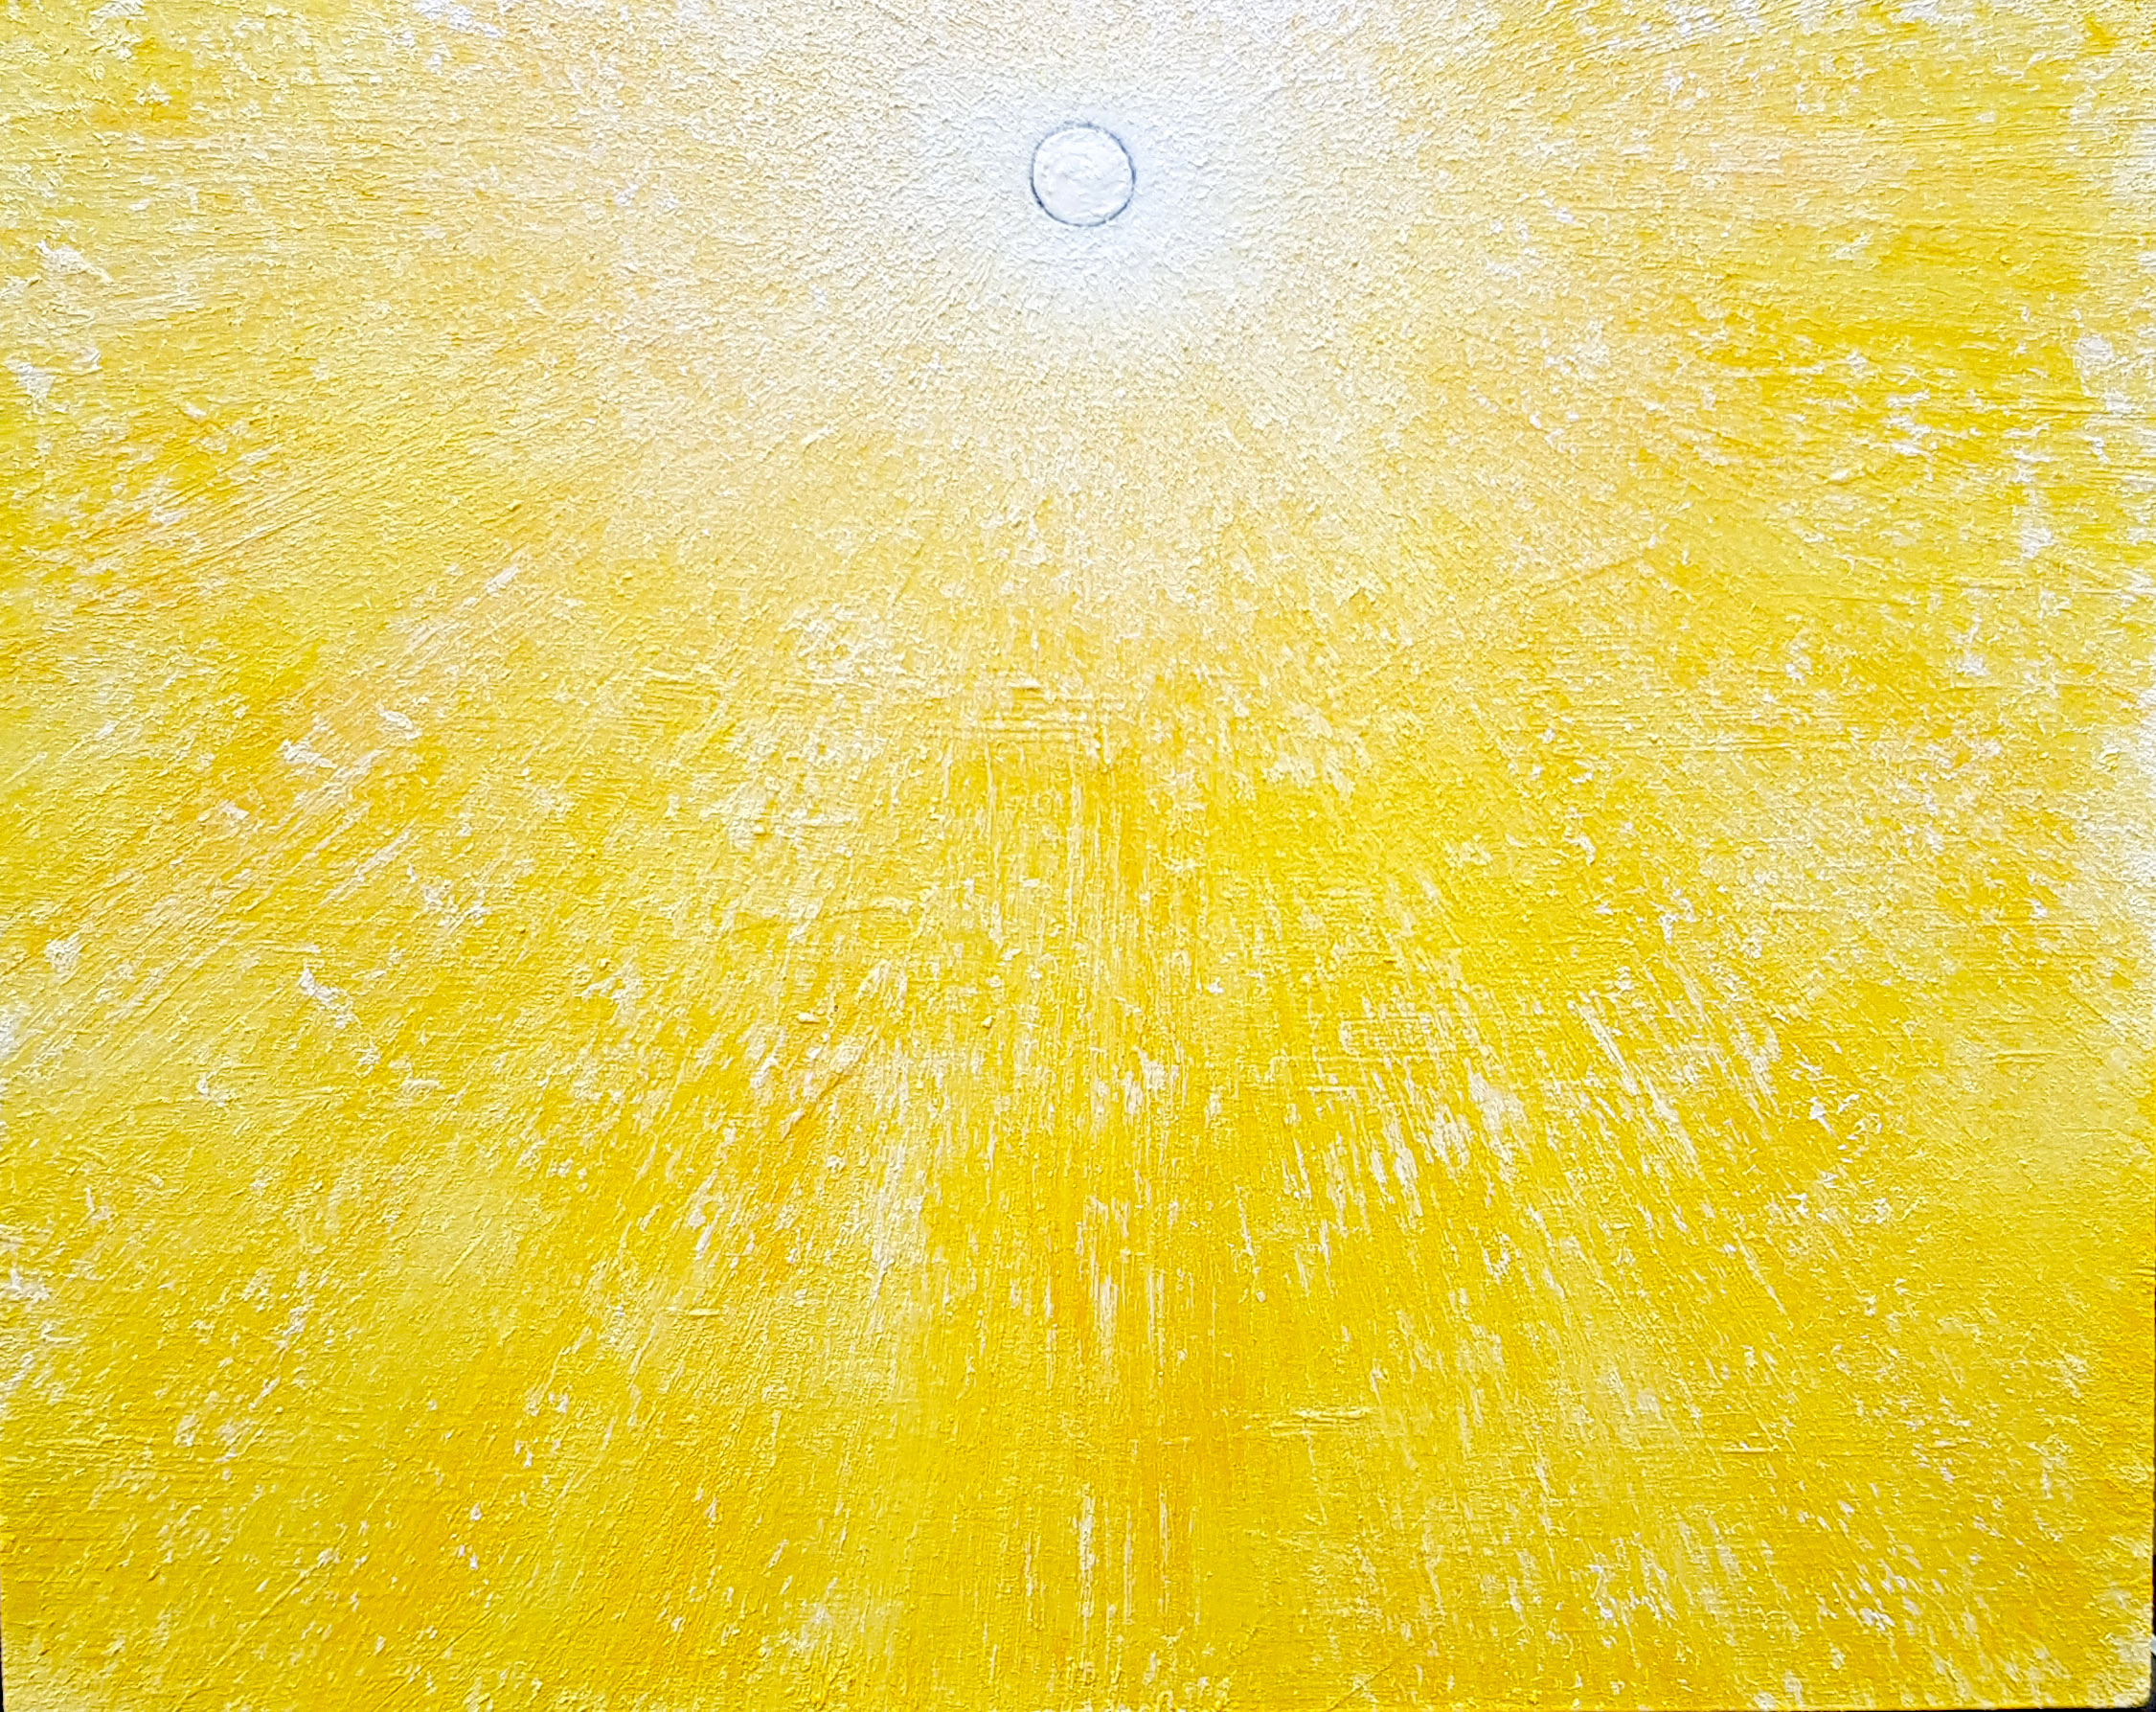 Meditation 27 (Sunshine) March 2020